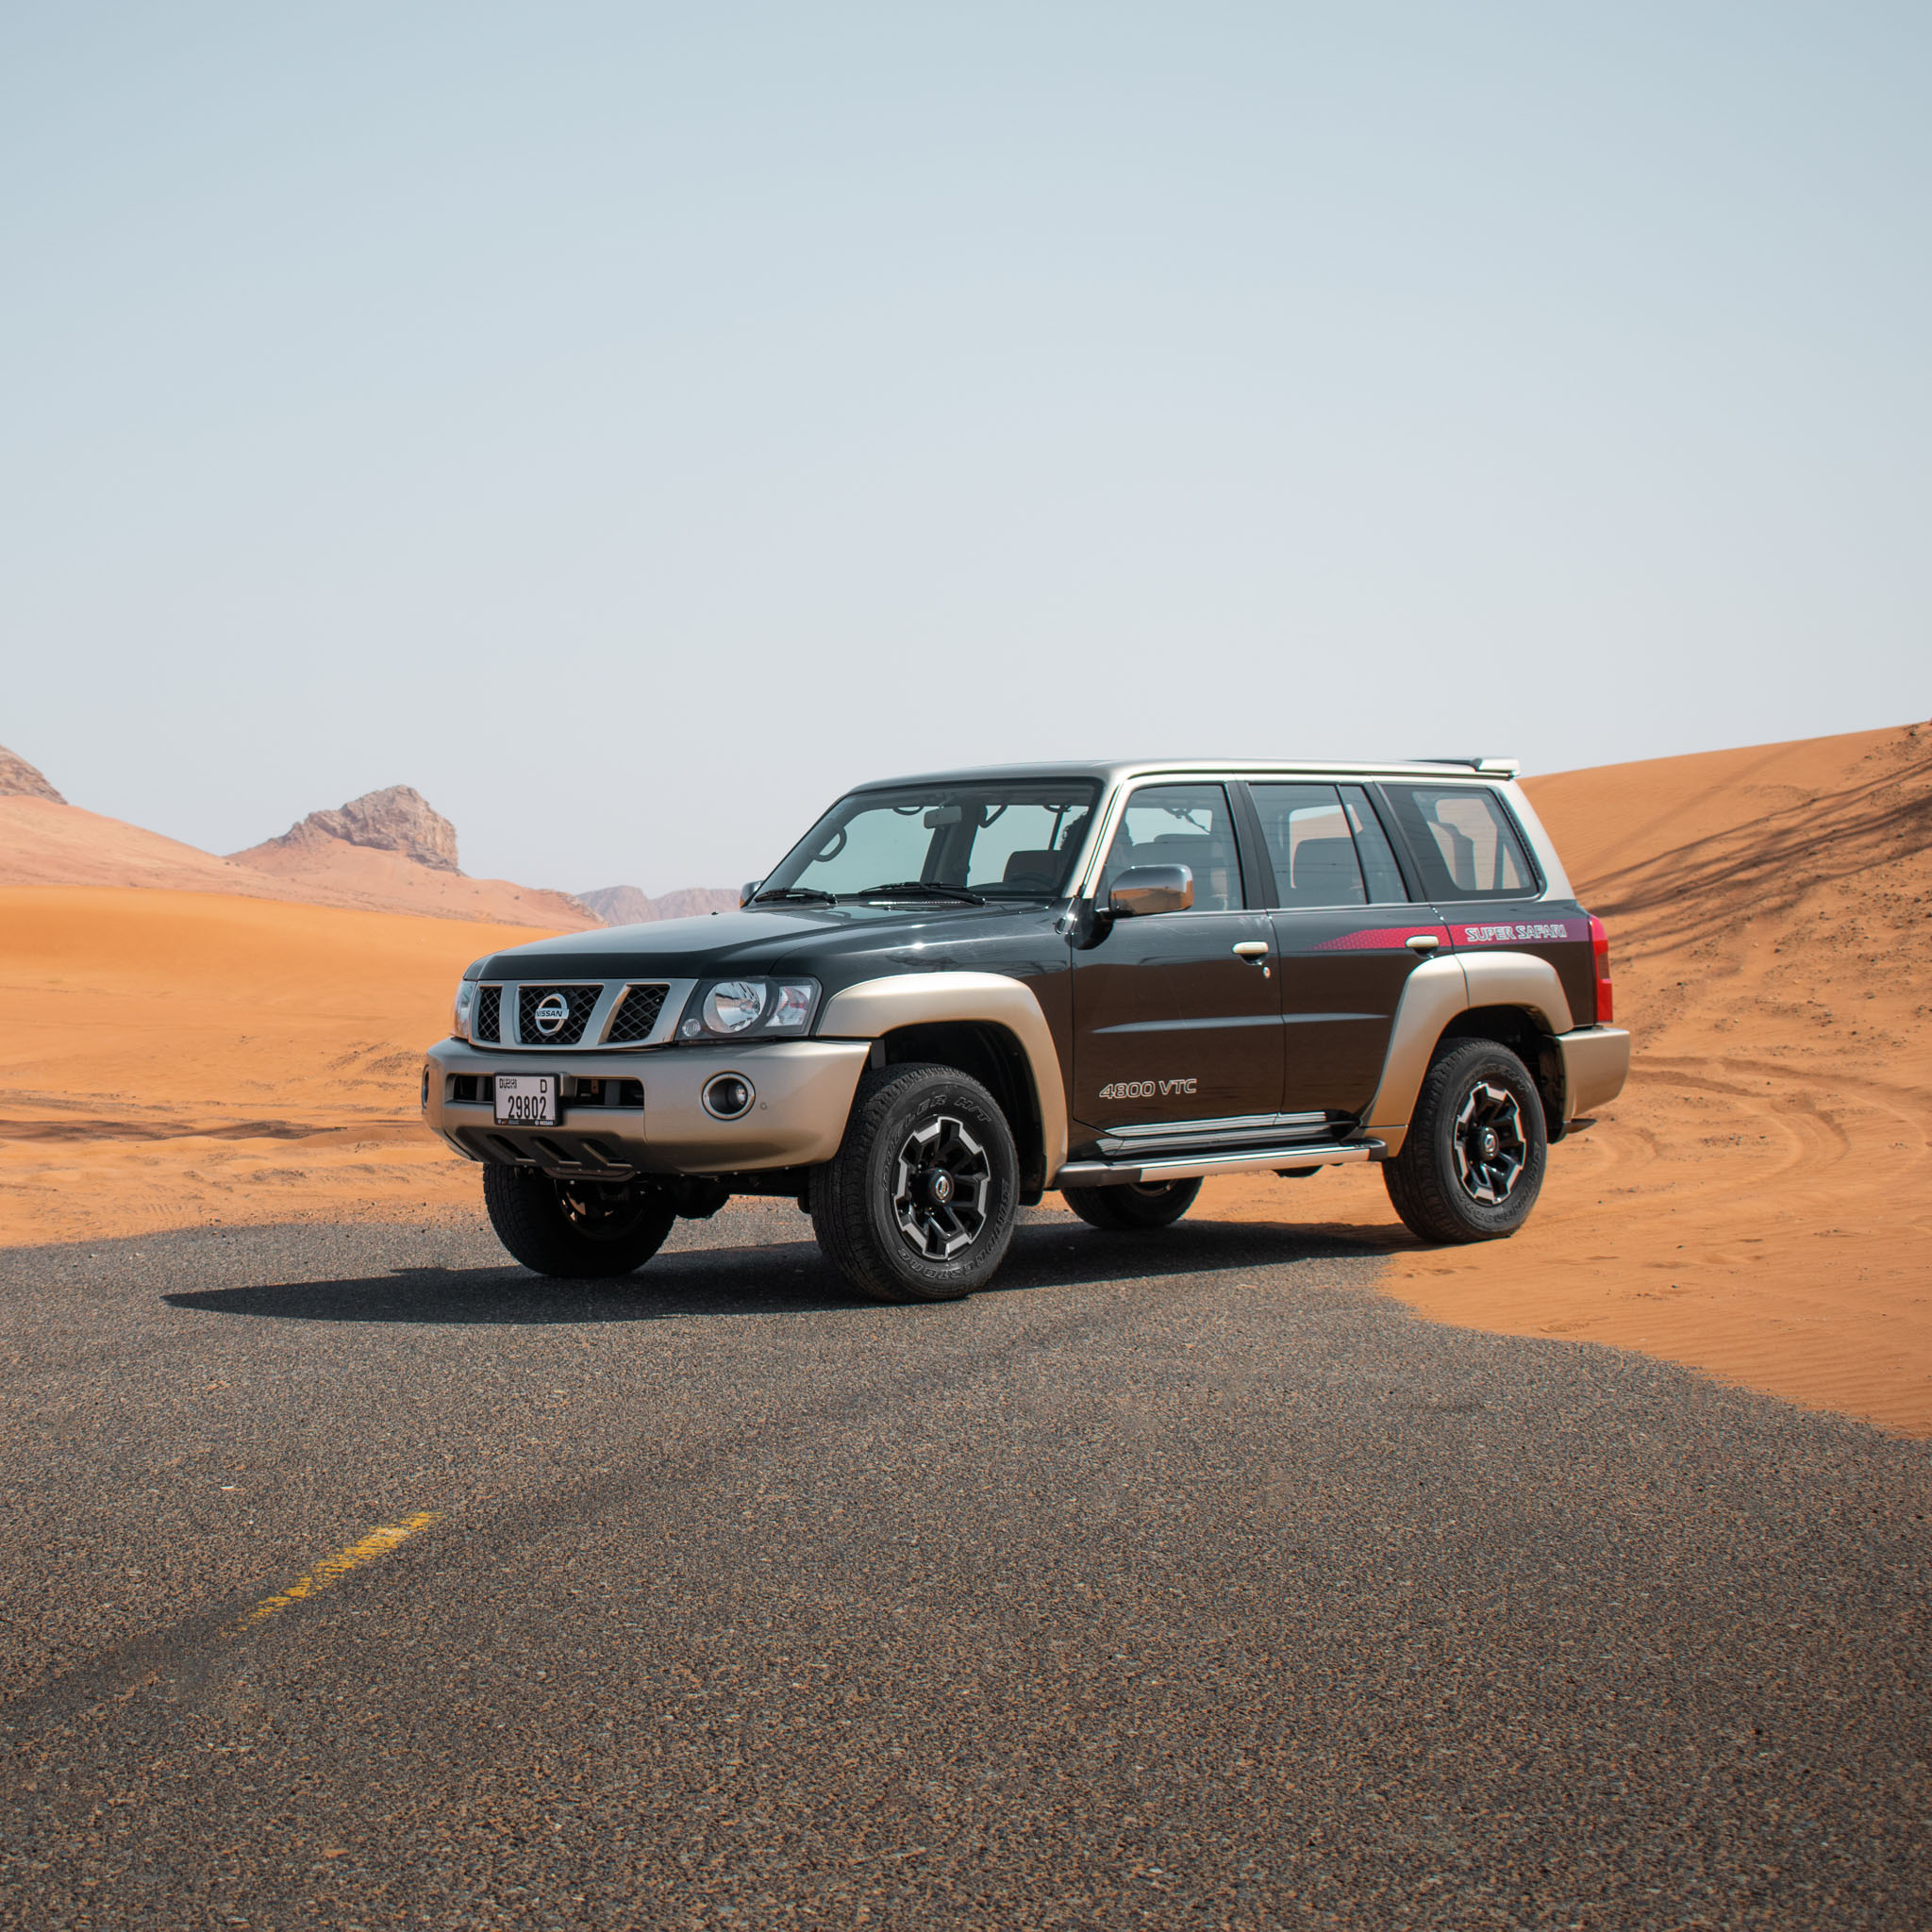 Nissan unveils enhancements to the iconic Nissan Patrol Super Safari with its 2021 edition